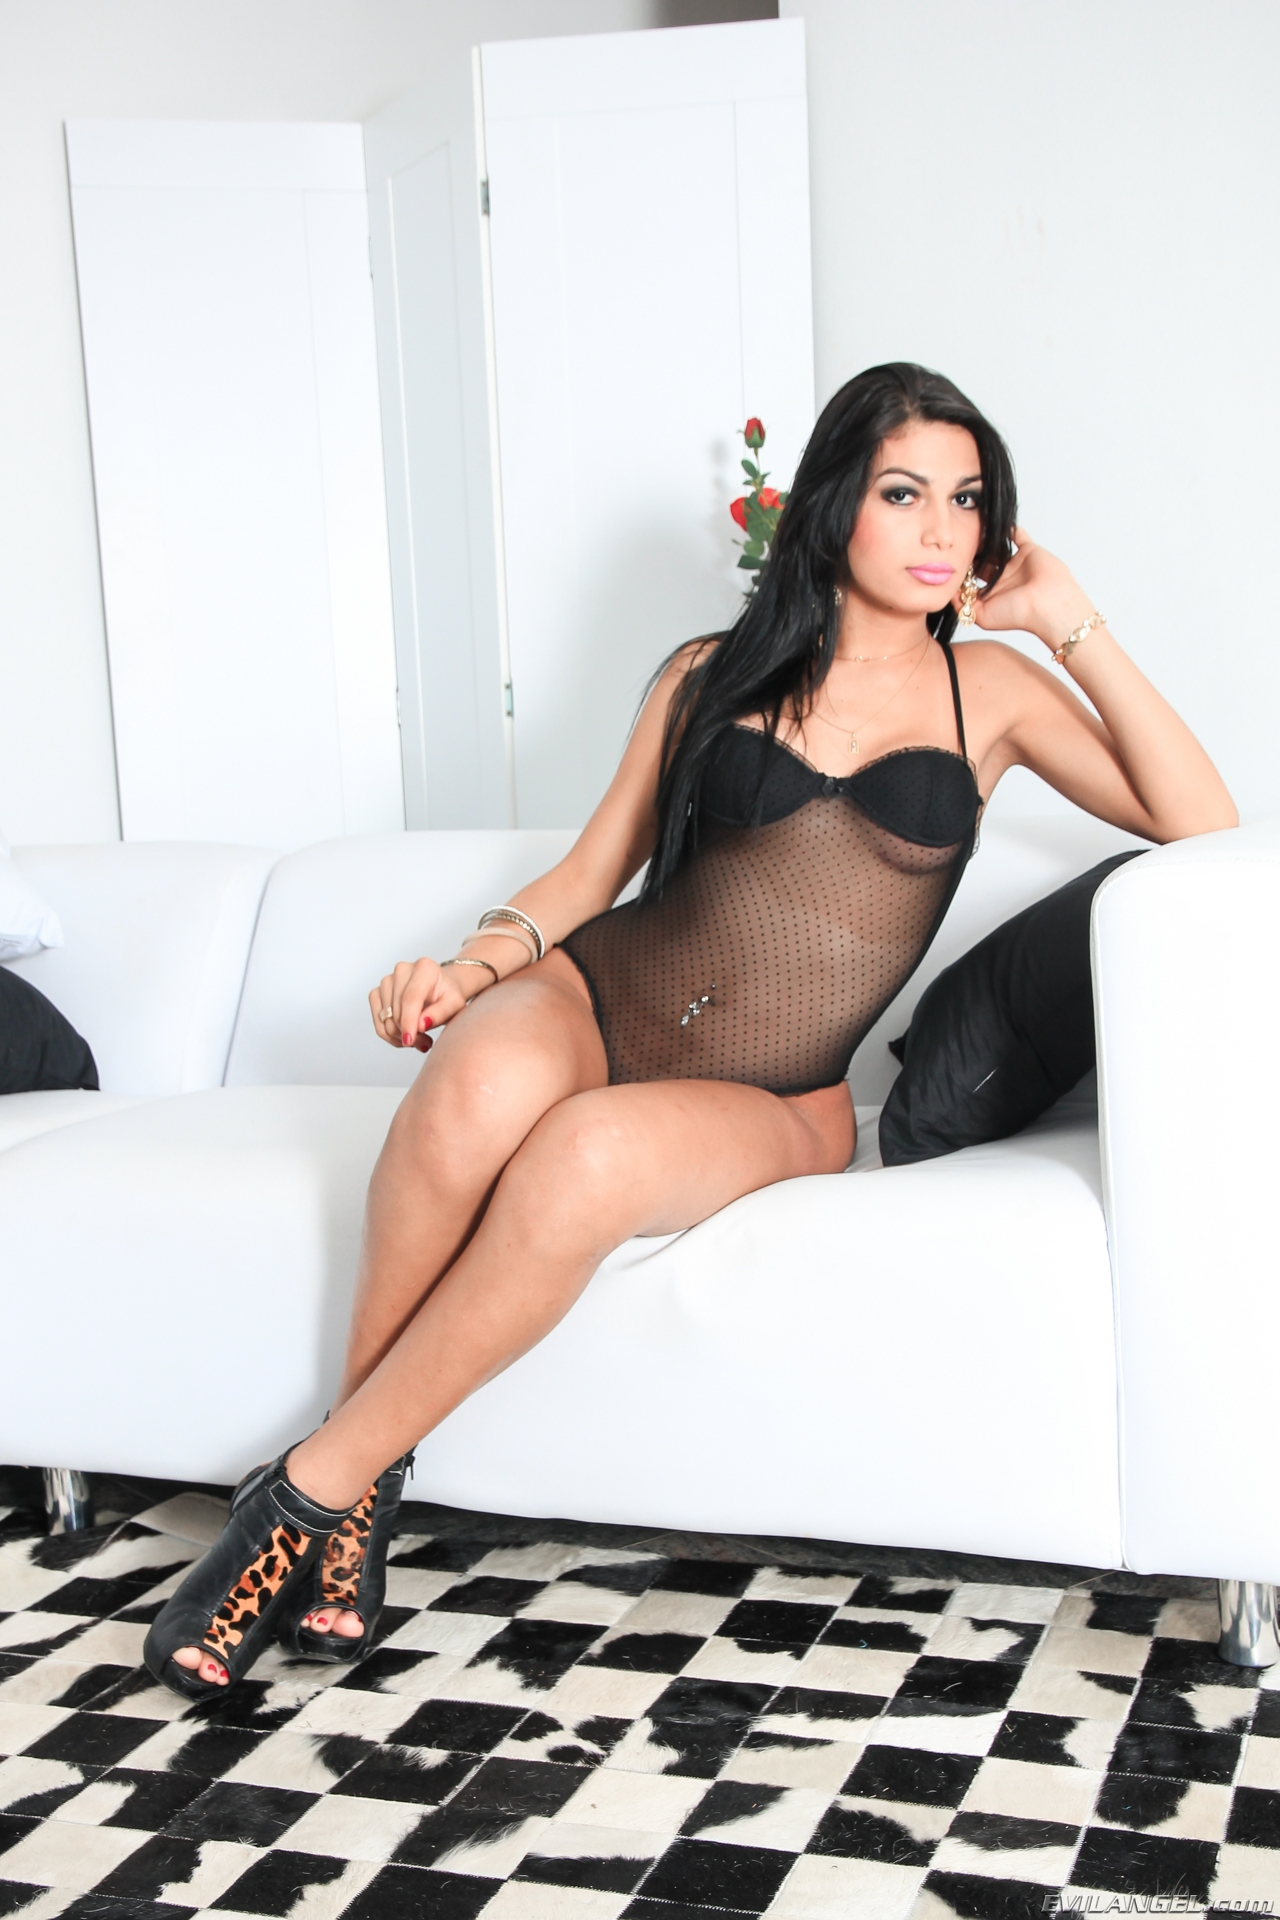 live sexe direct shemale 043